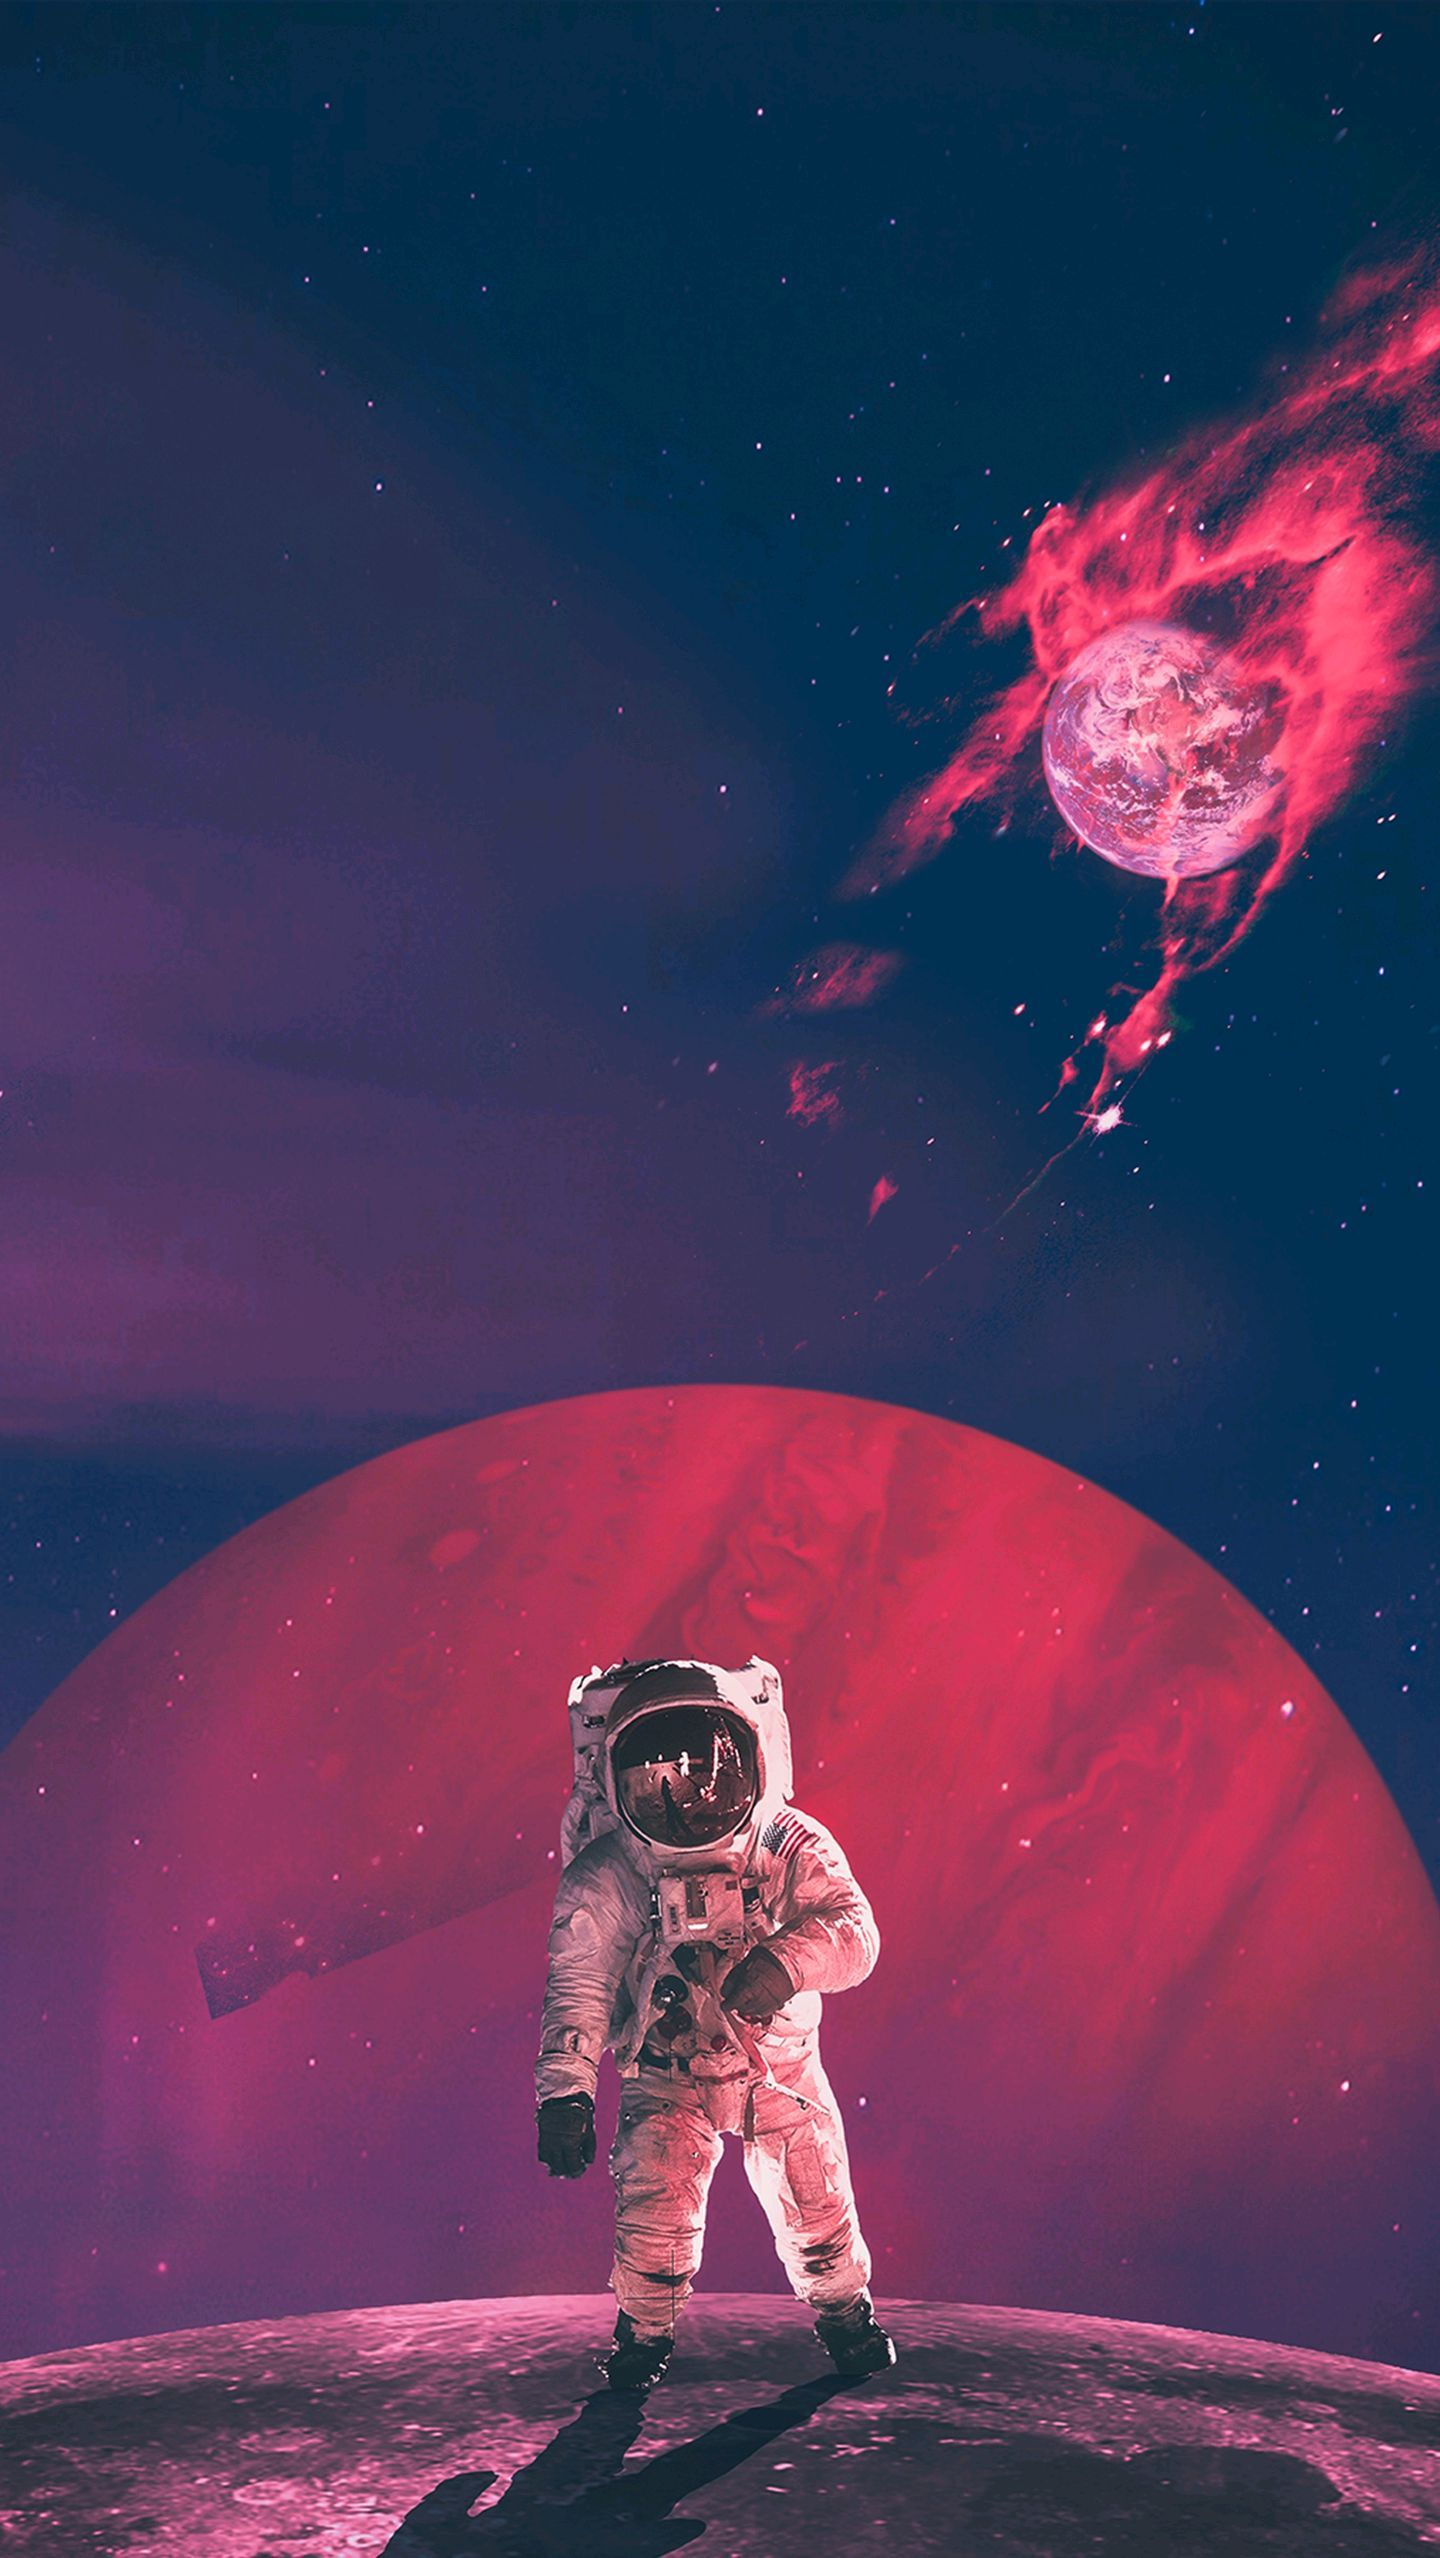 Space Aesthetic Wallpaper Iphone